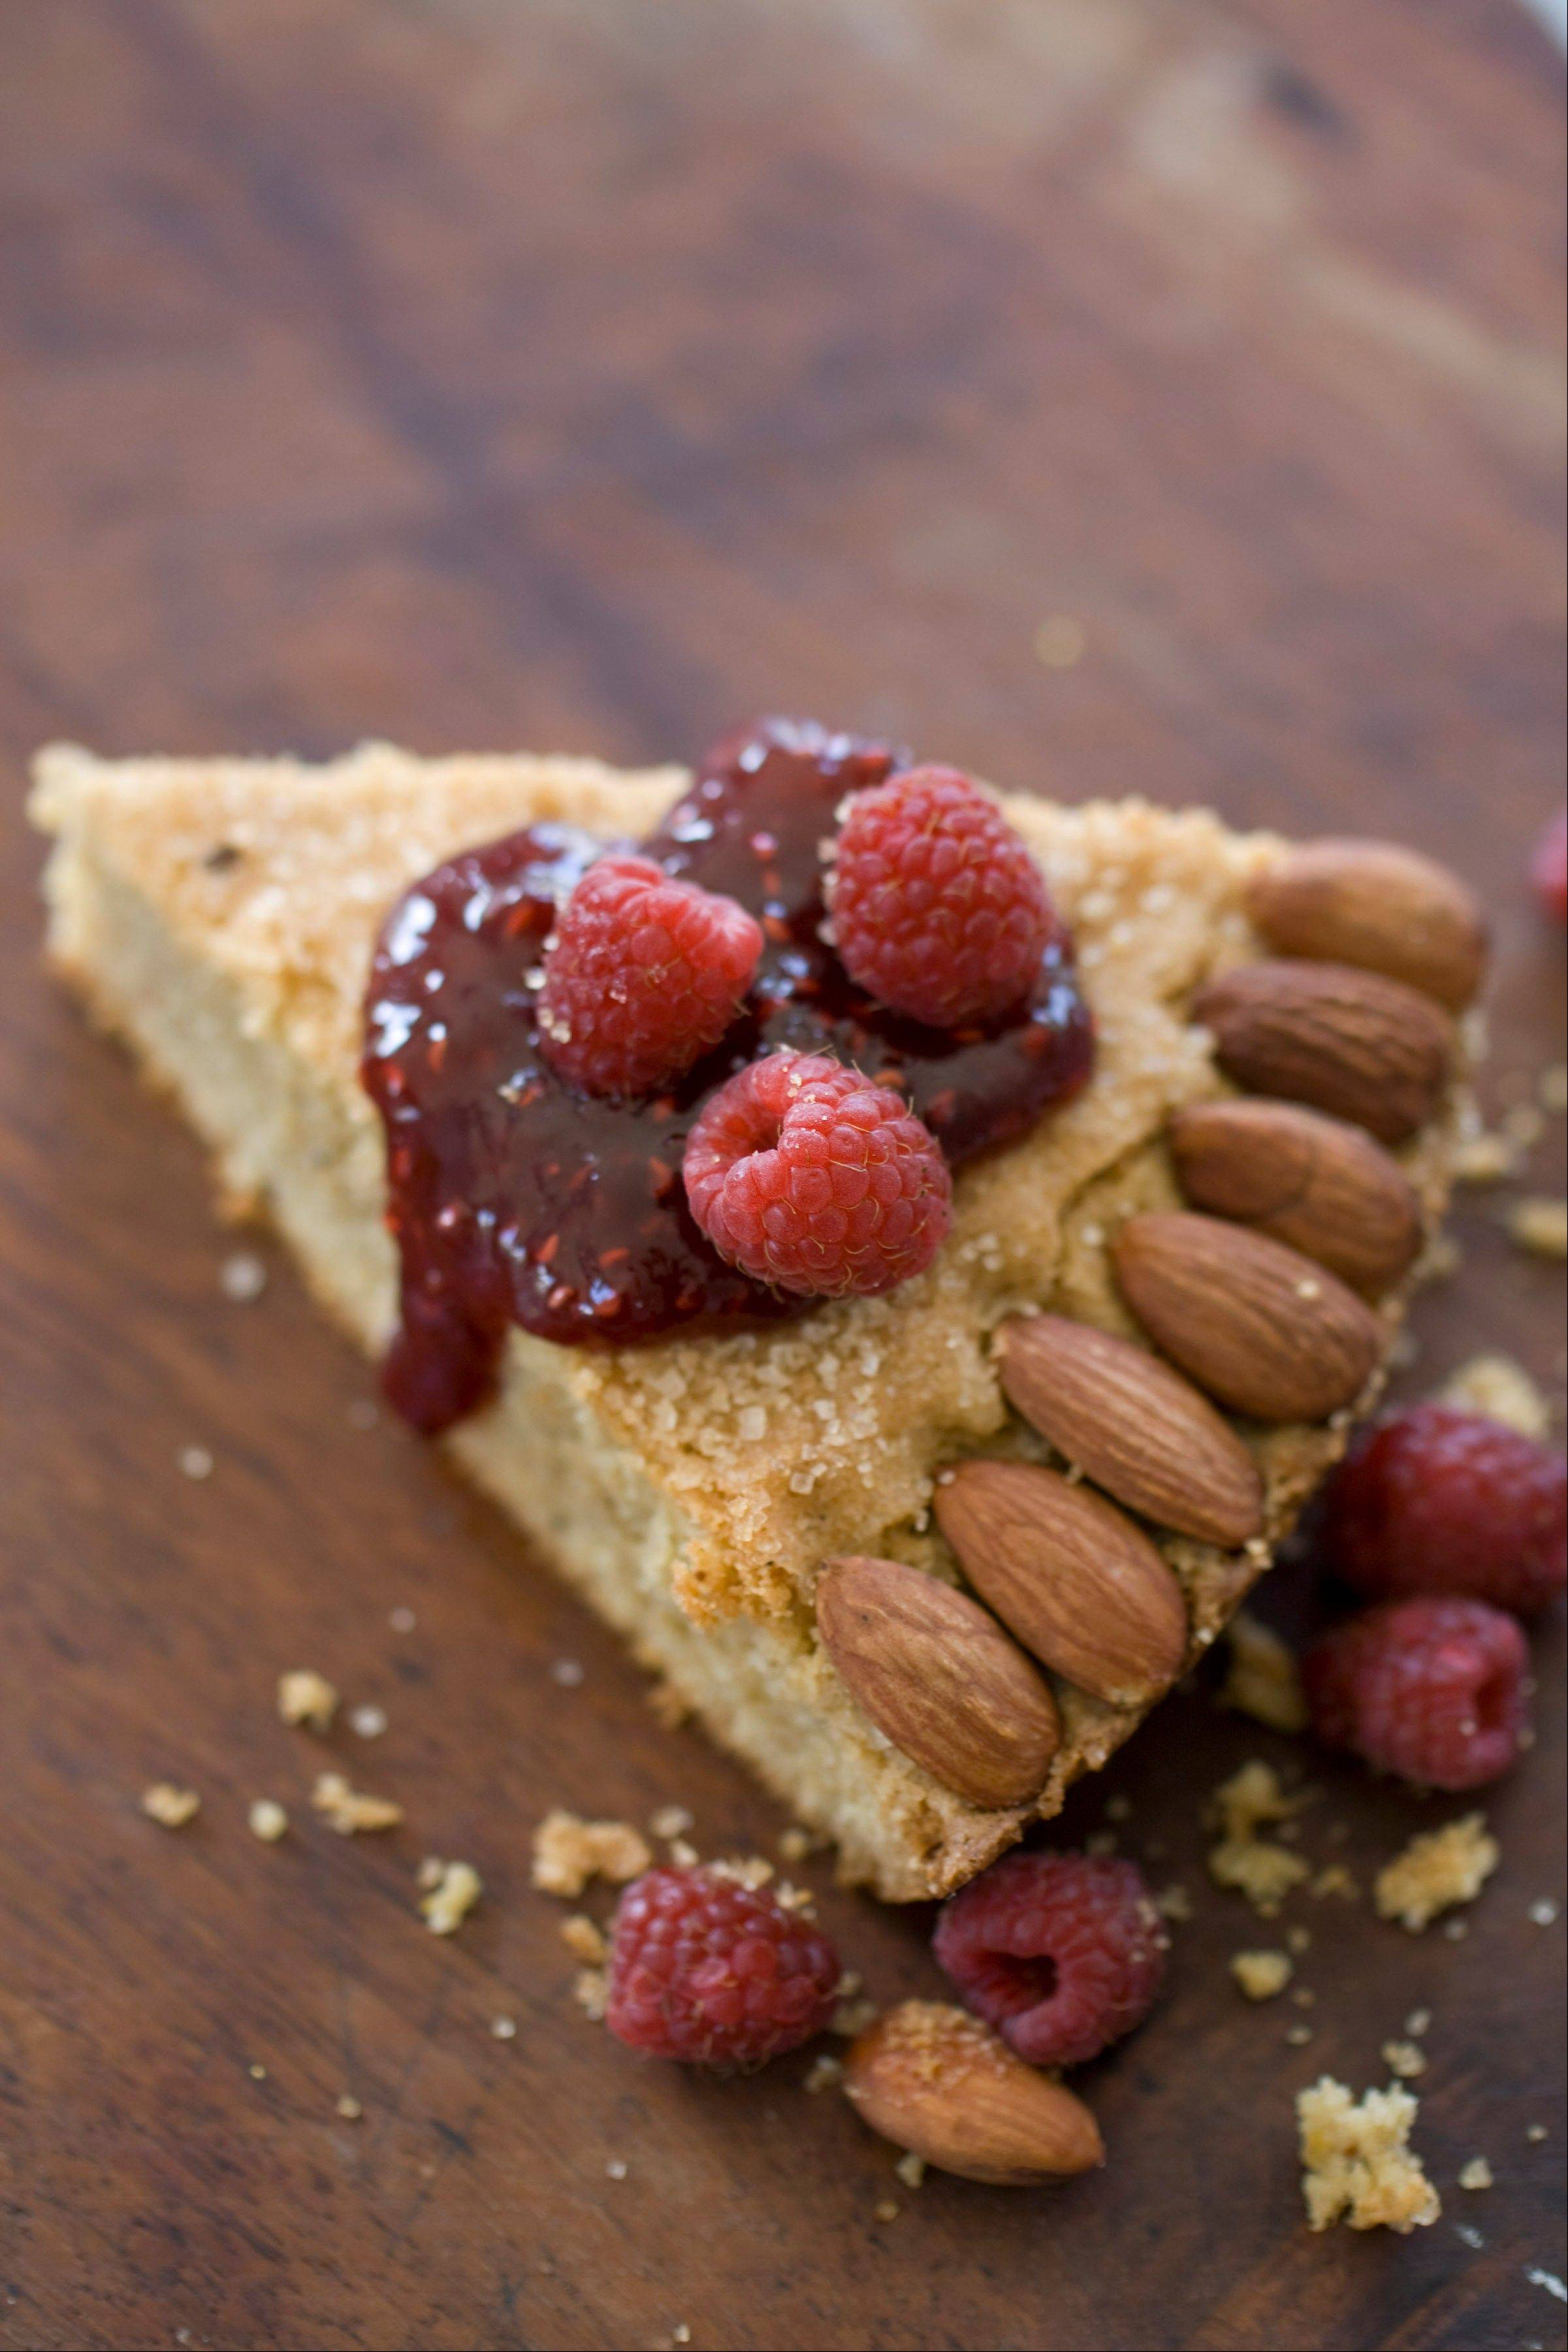 This Sept. 8, 2013 photo shows a citrus spice almond butter torte in Concord, N.H. (AP Photo/Matthew Mead)